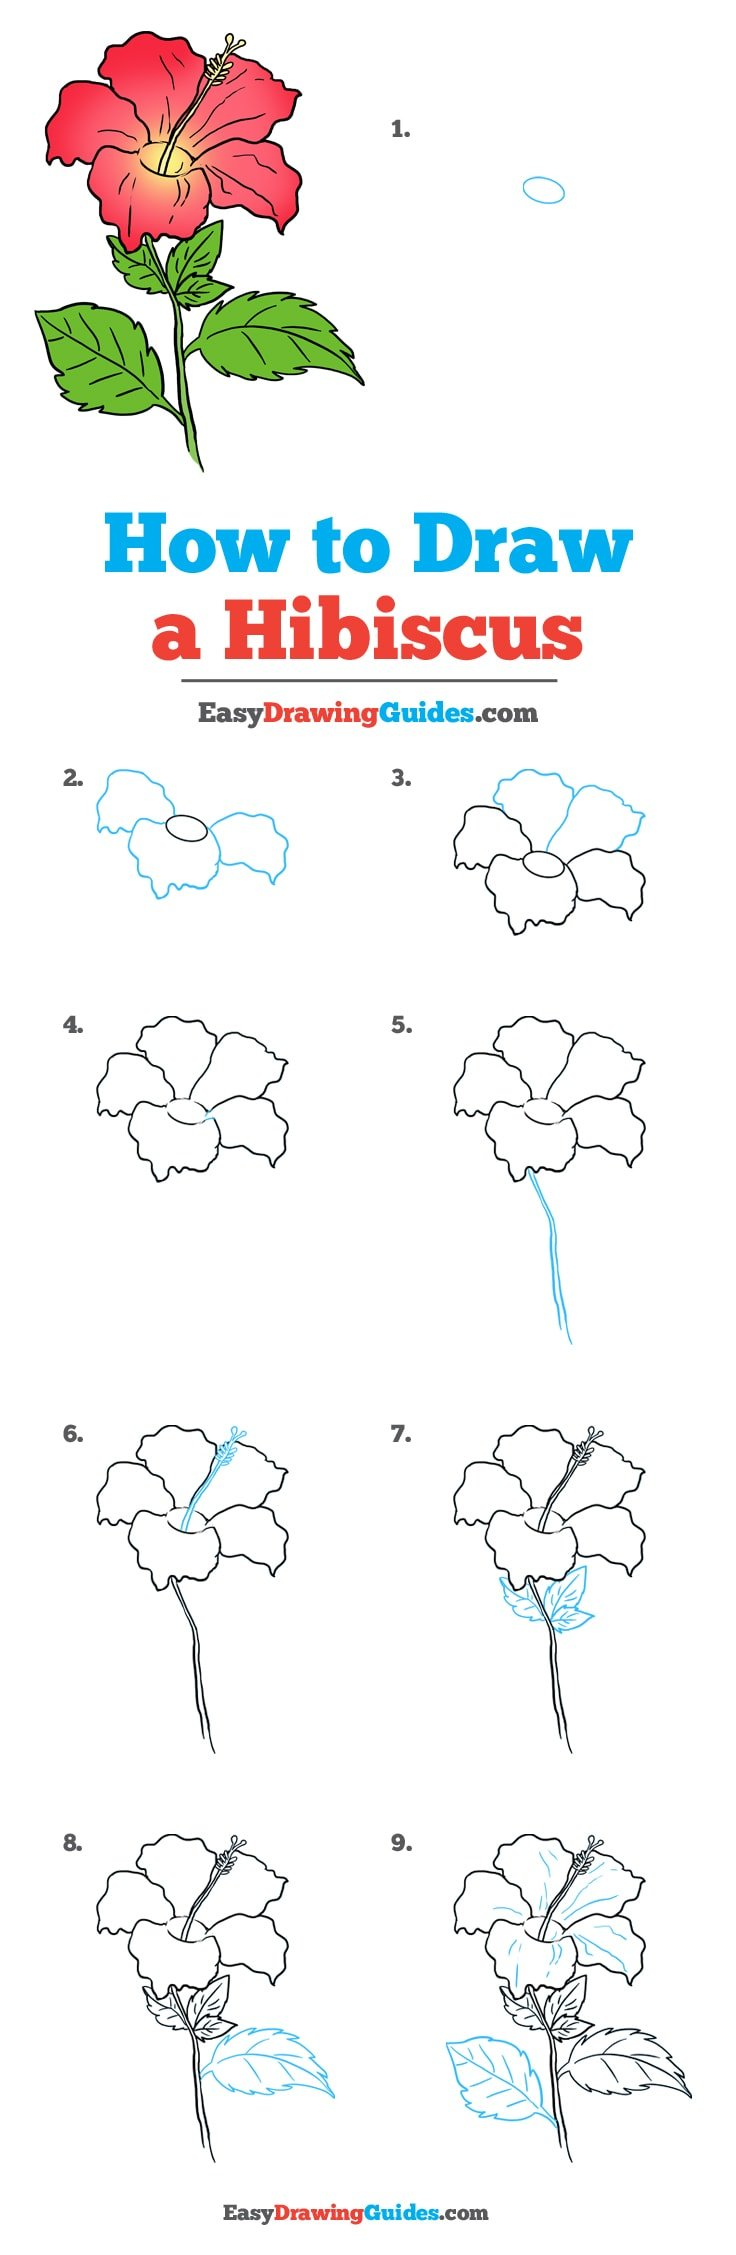 How to Draw Hibiscus